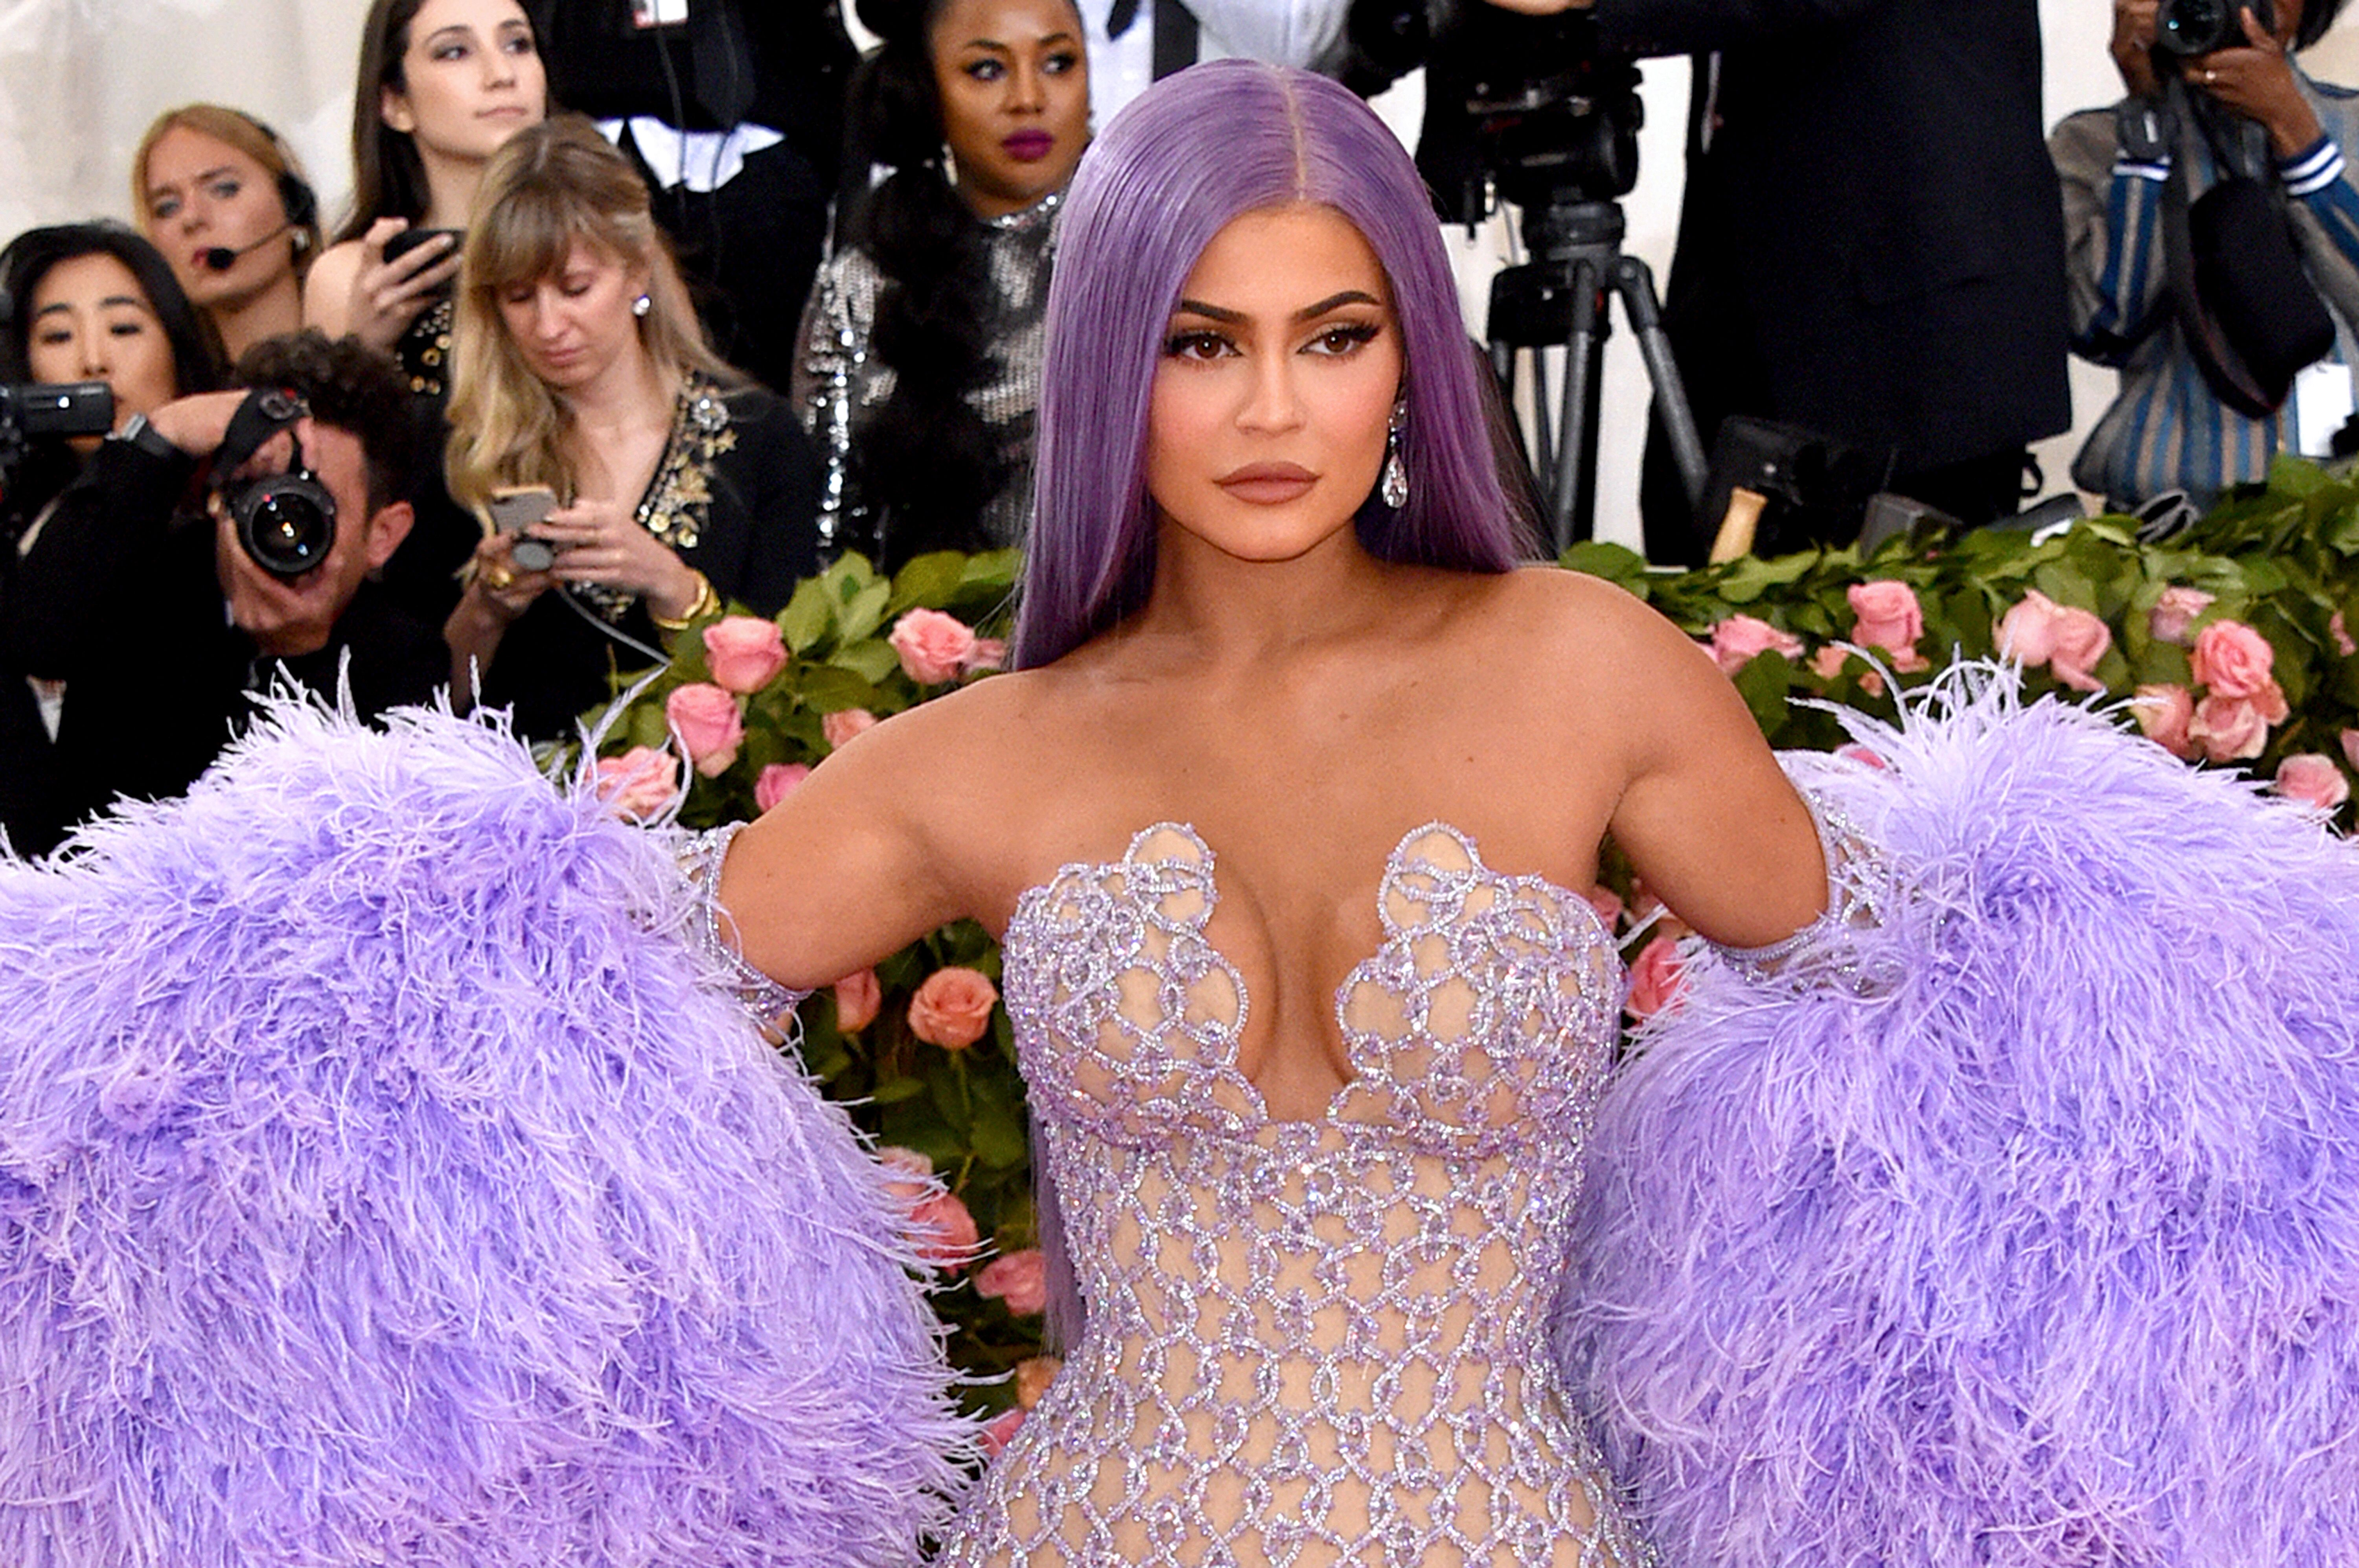 Kylie Jenner at the 2019 MET Gala/ Source: Getty Images